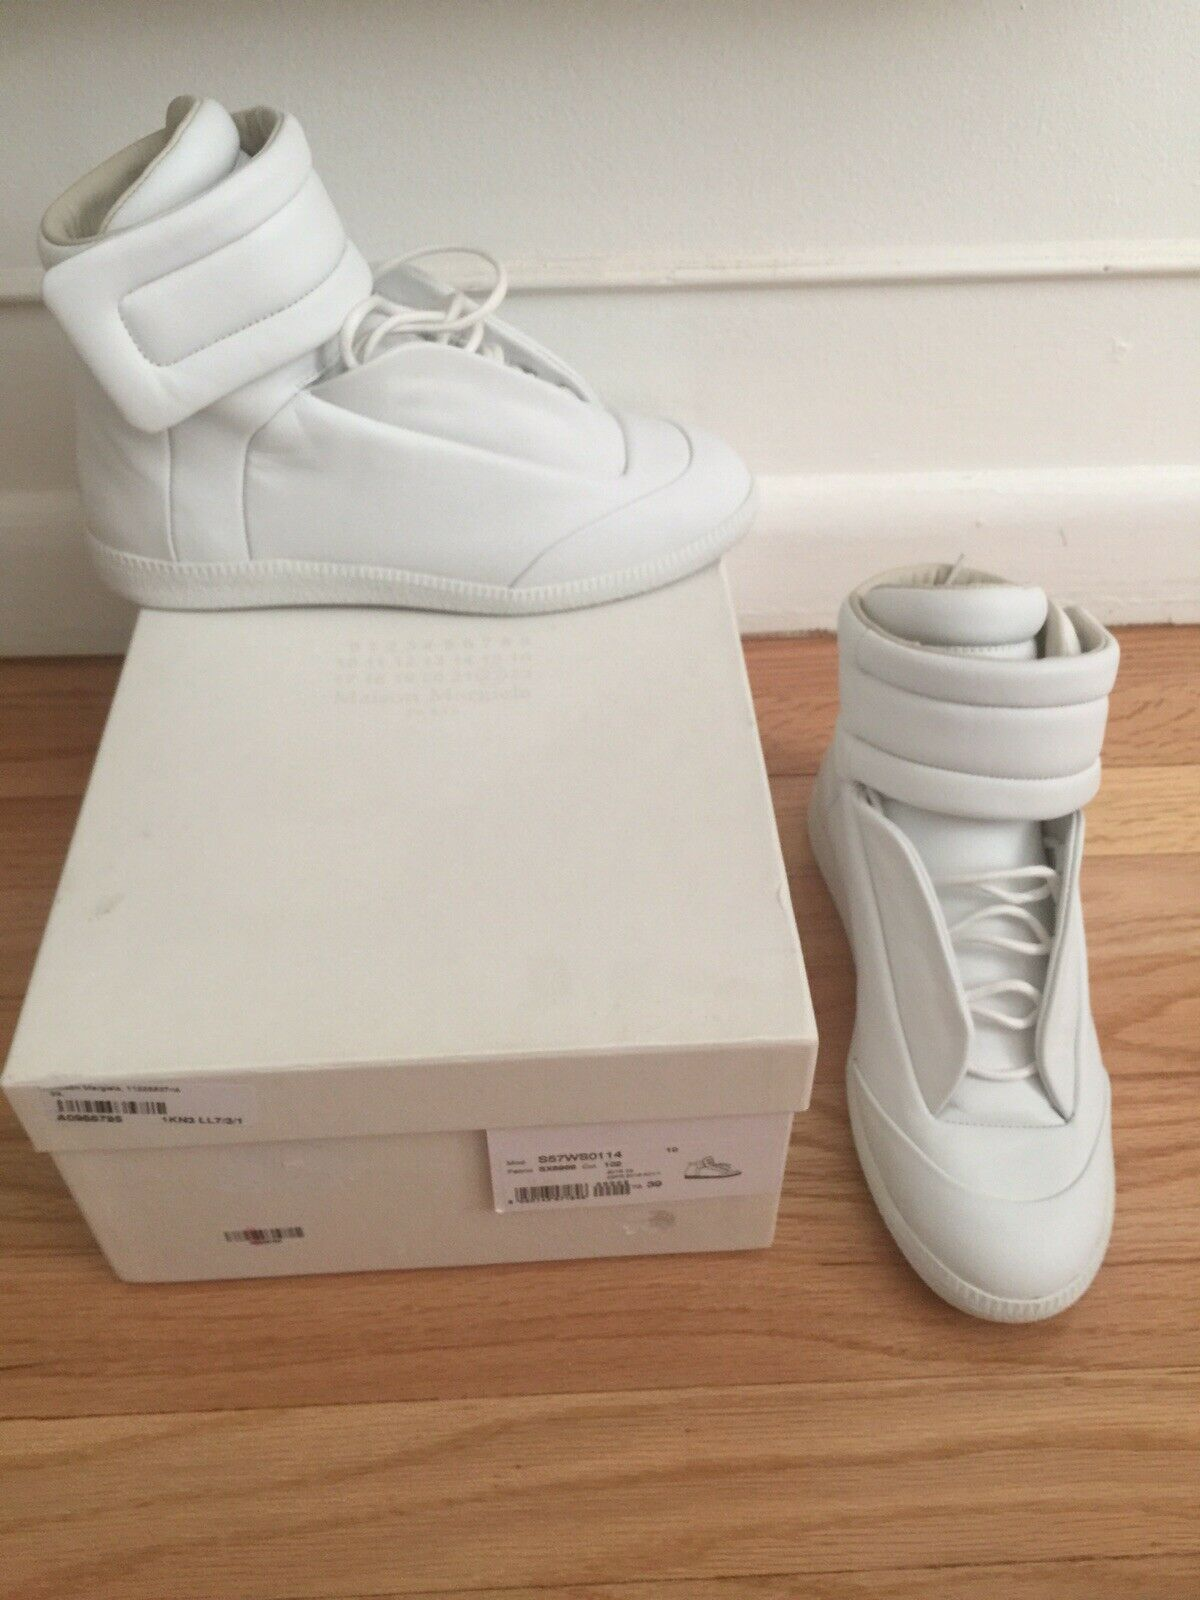 Maison Margiela Sneakers Hight Top White Leather US 6 39 New